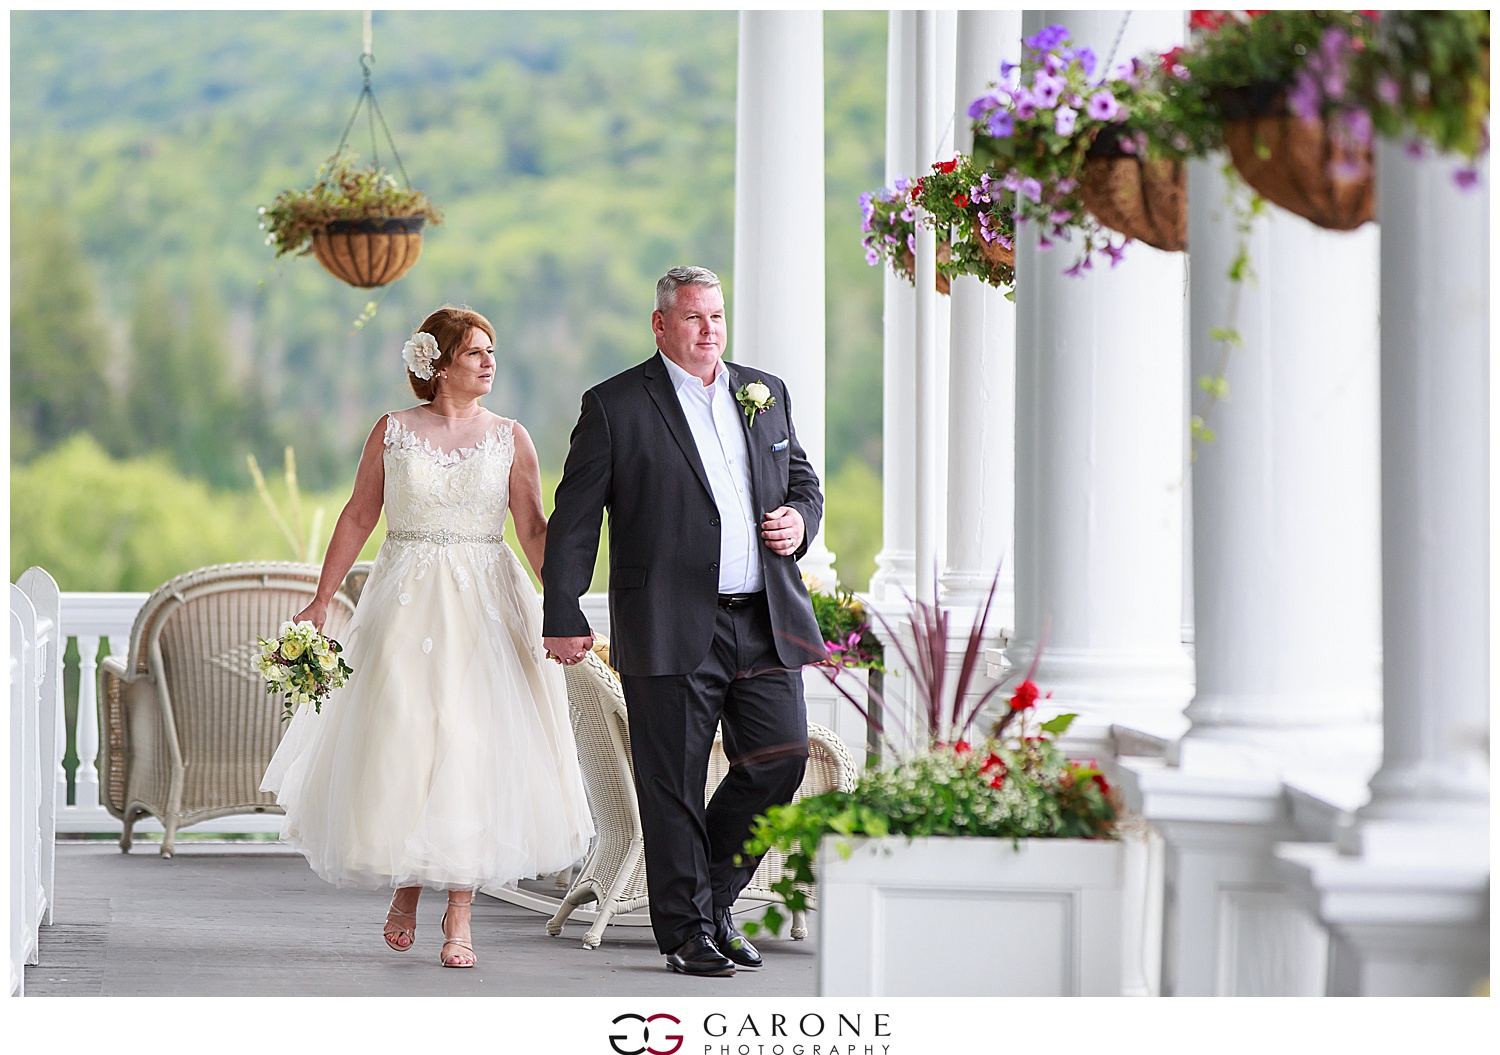 Brian_Kelly_Omni_Mount_Washington_Wedding_Garone_Photography_Wedding_NH_Photography_0021.jpg